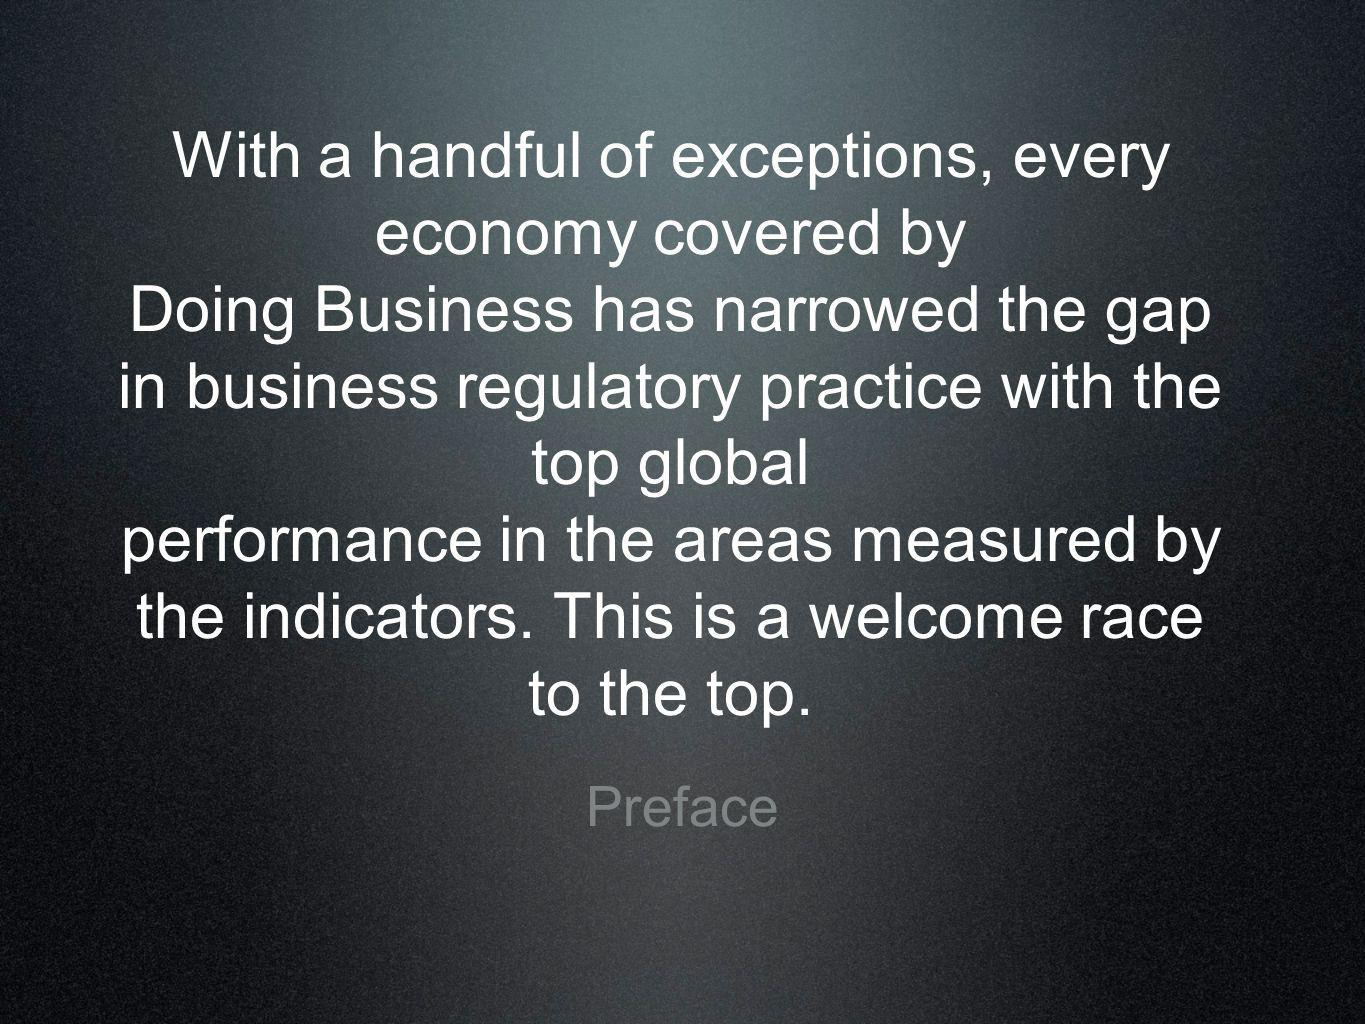 With a handful of exceptions, every economy covered by Doing Business has narrowed the gap in business regulatory practice with the top global performance in the areas measured by the indicators. This is a welcome race to the top.